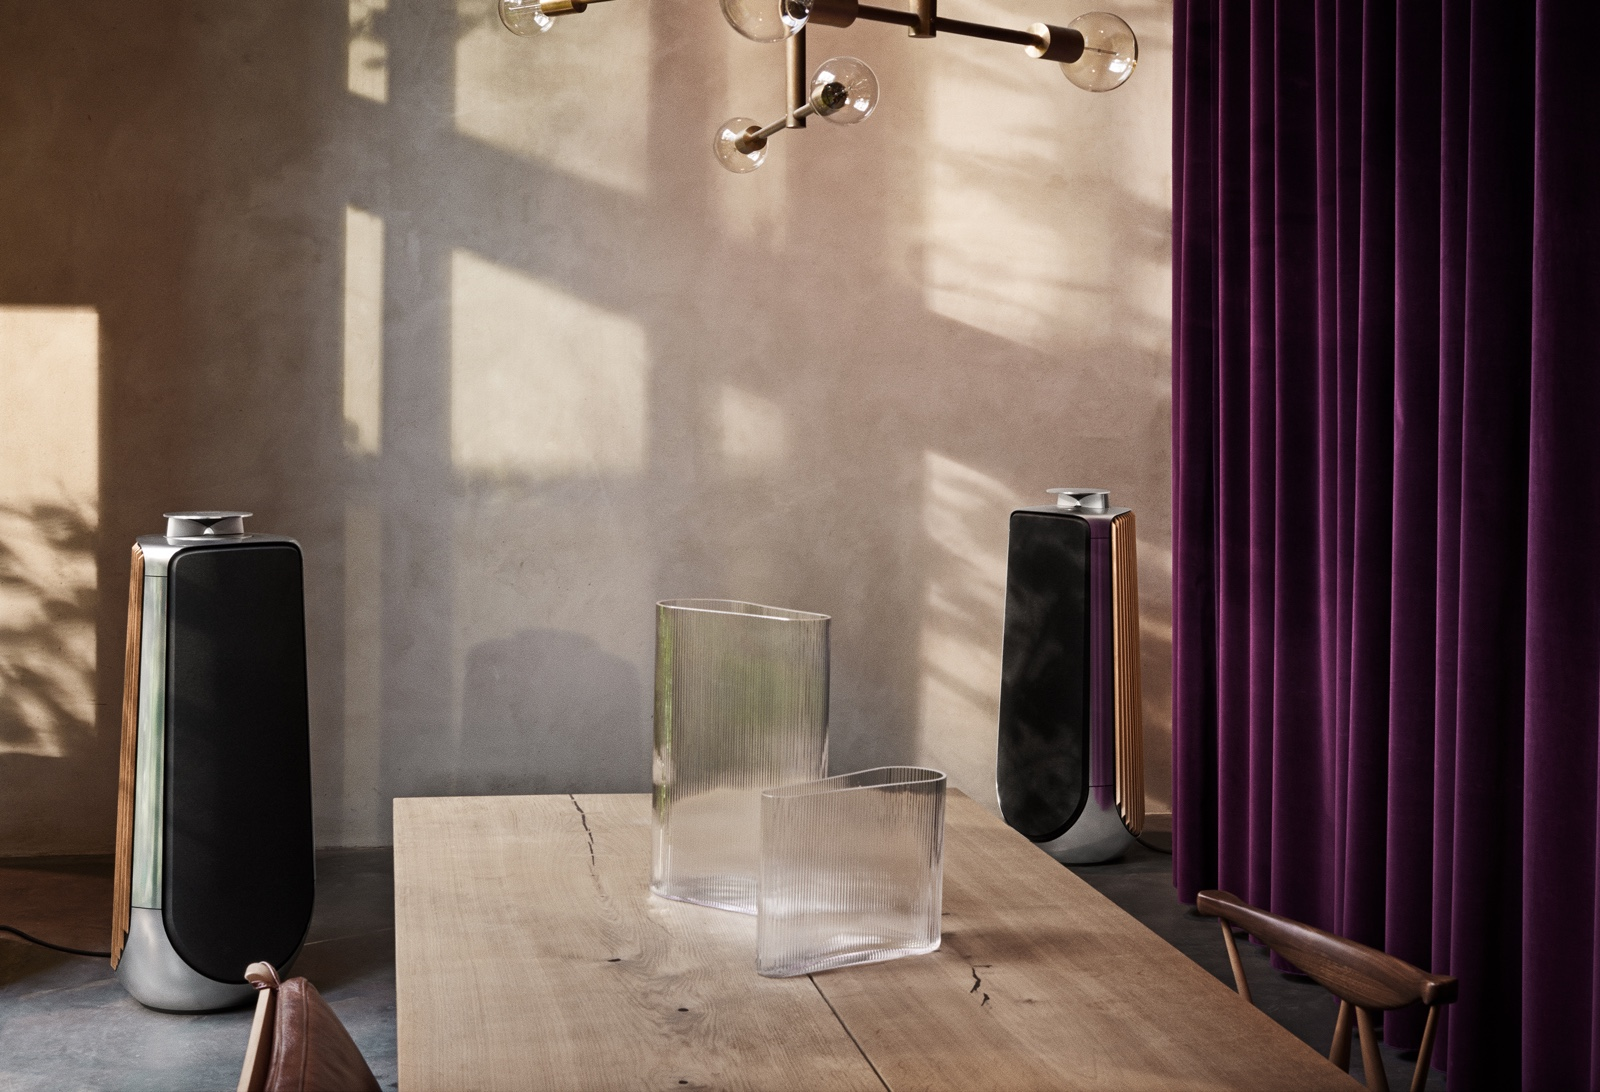 beolab 50 tout le savoir faire bang olufsen dans une enceinte de salon diisign. Black Bedroom Furniture Sets. Home Design Ideas